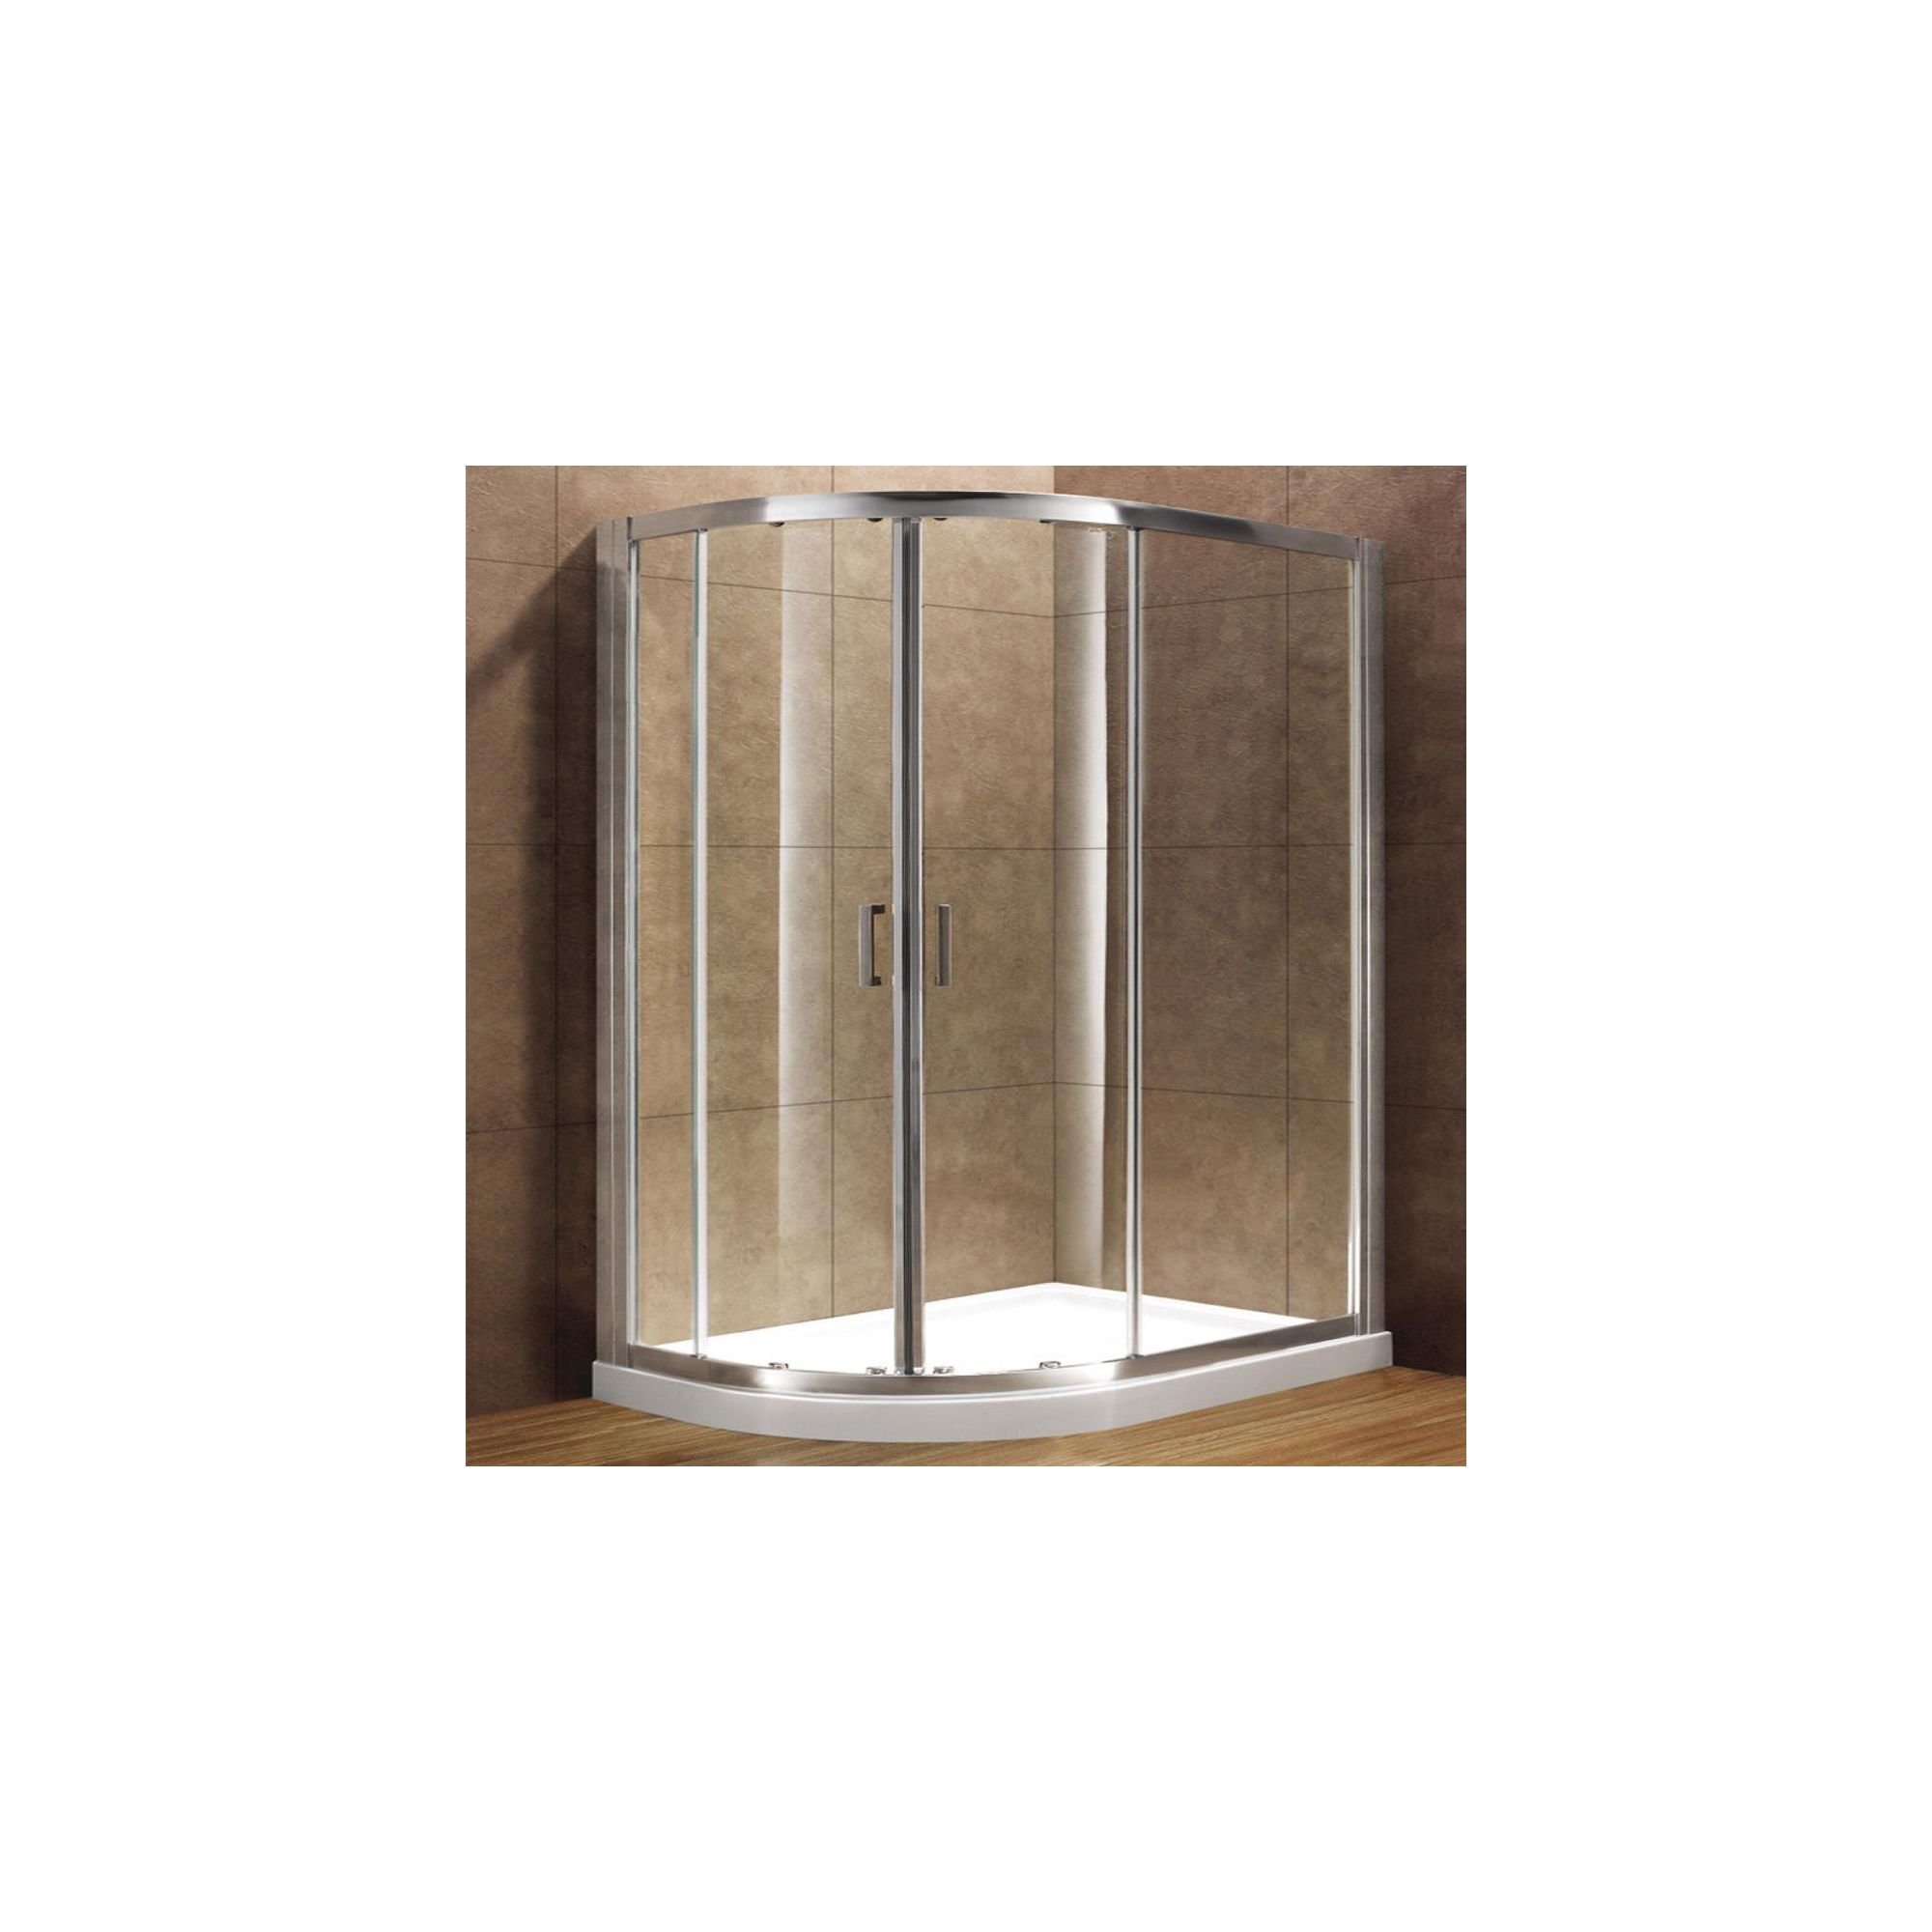 Duchy Premium Double Quadrant Door Shower Enclosure, 1000mm x 1000mm, 8mm Glass, Low Profile Tray at Tesco Direct